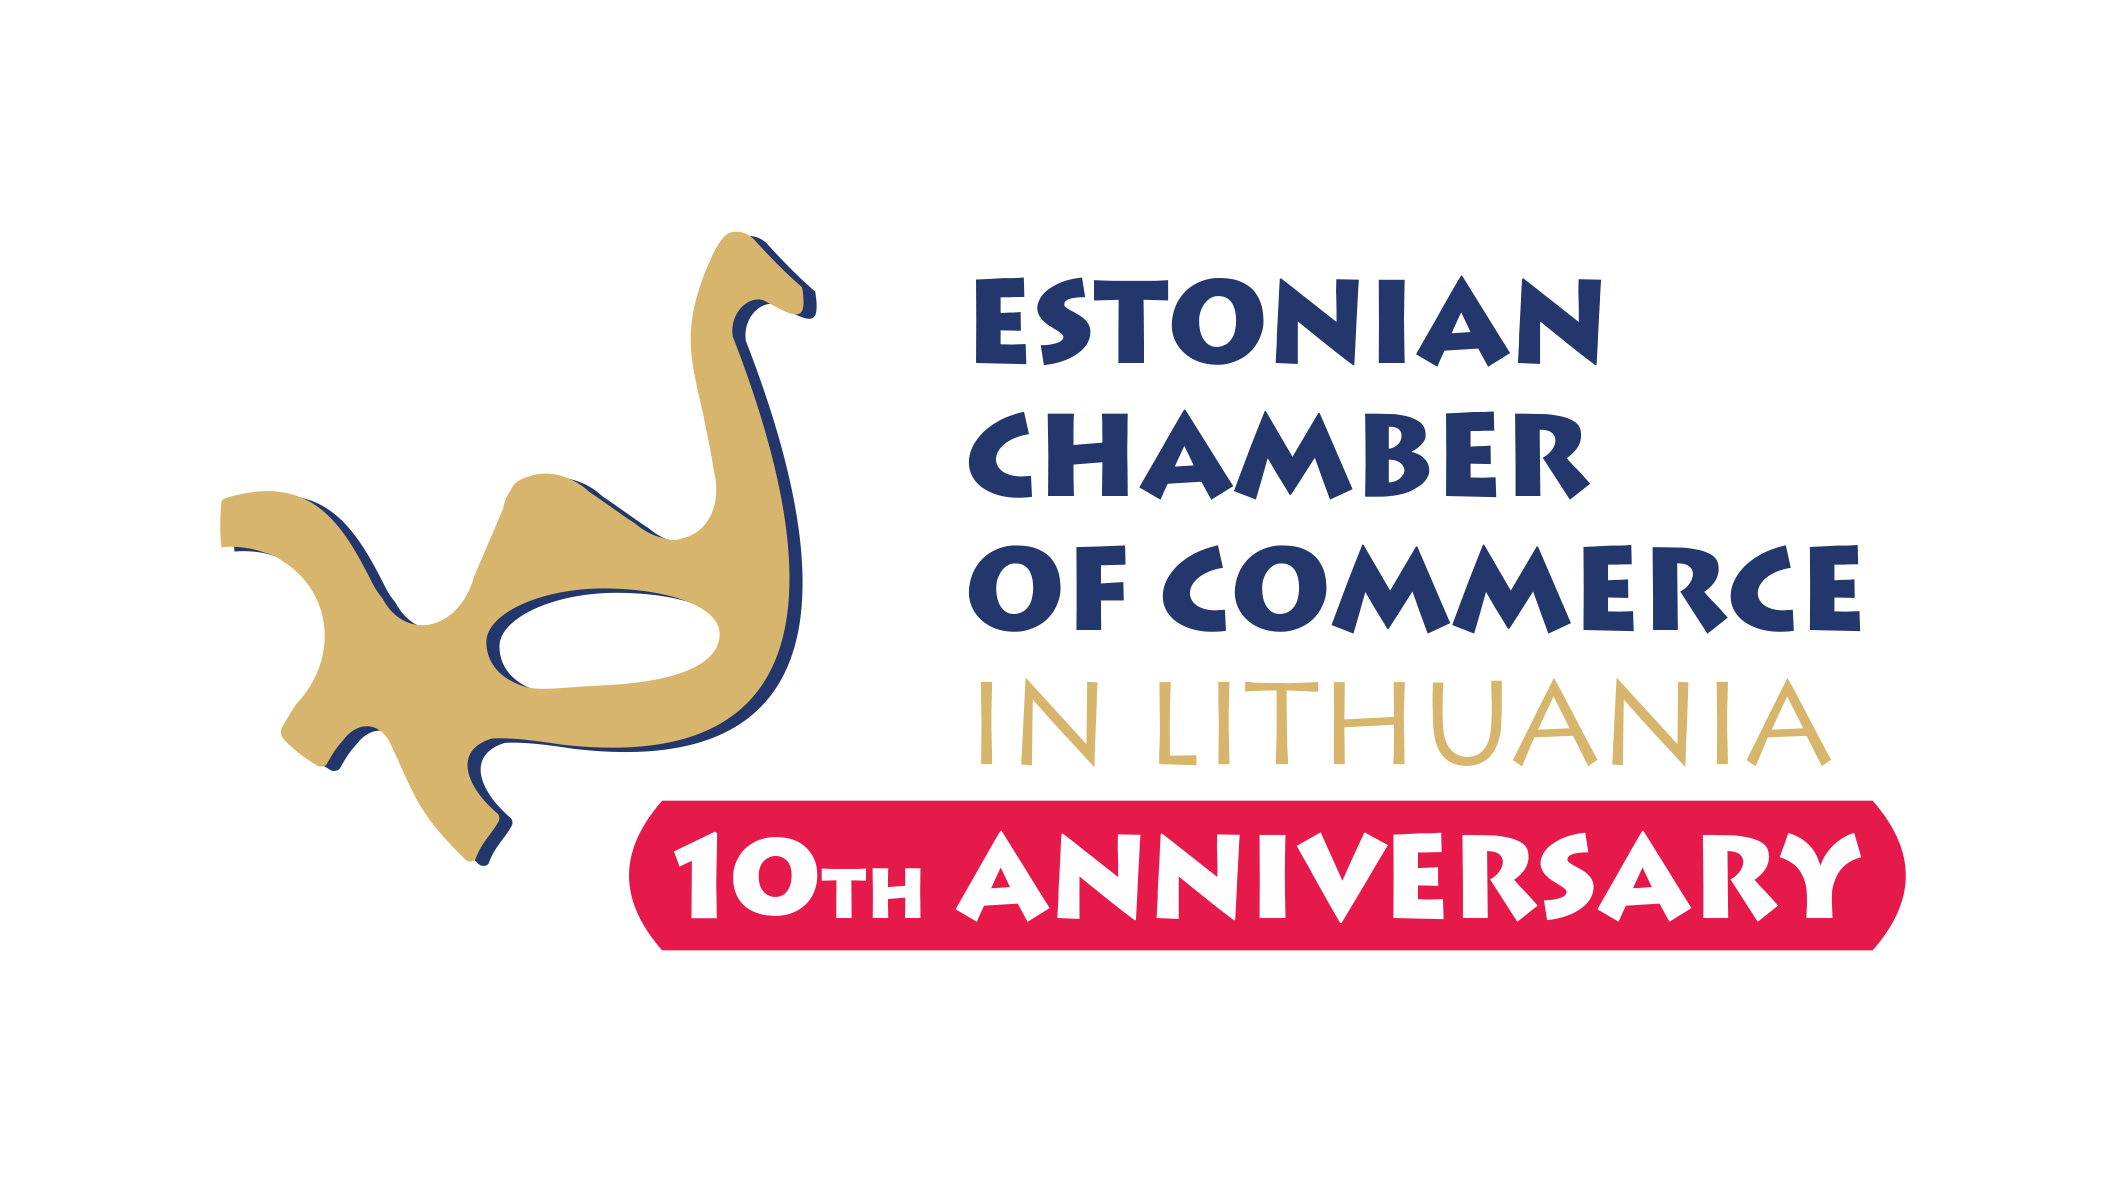 SAVE THE DATE: 10th Anniversary ot the Estonian Chamber of Commerce in Lithuania